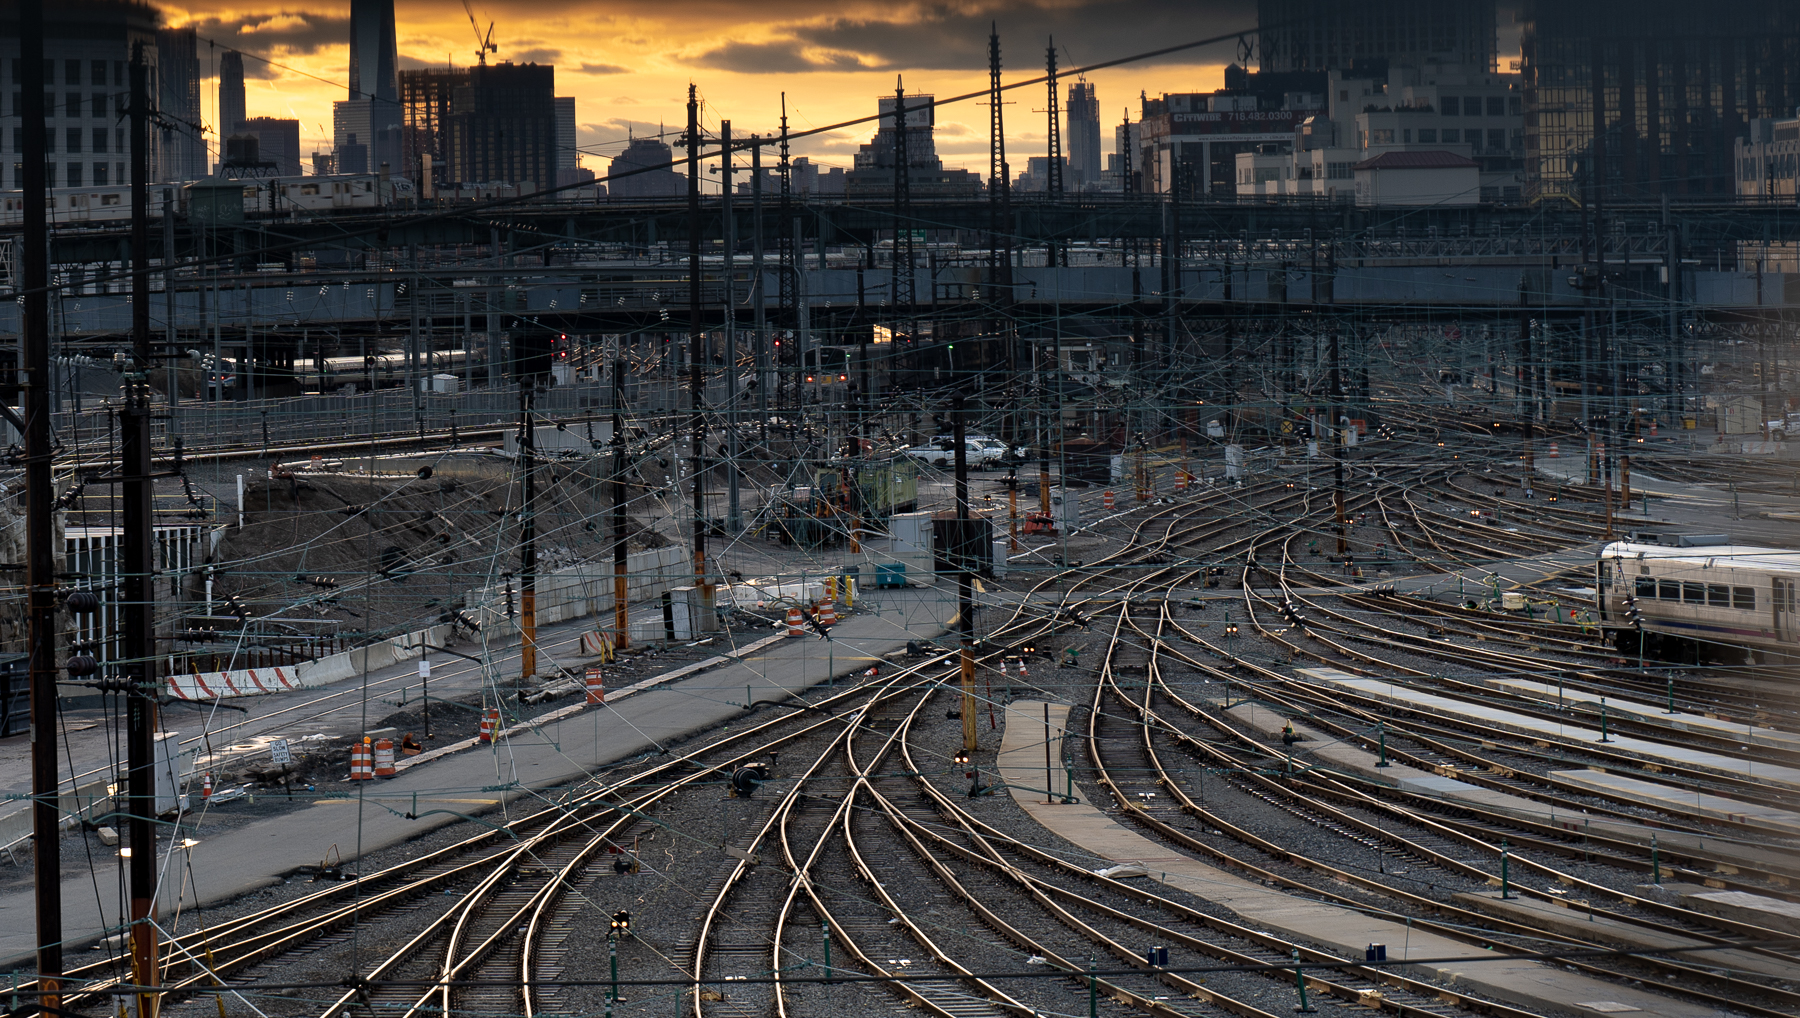 Spaghetti Tracks – Sunnyside Rail Yard in Queens